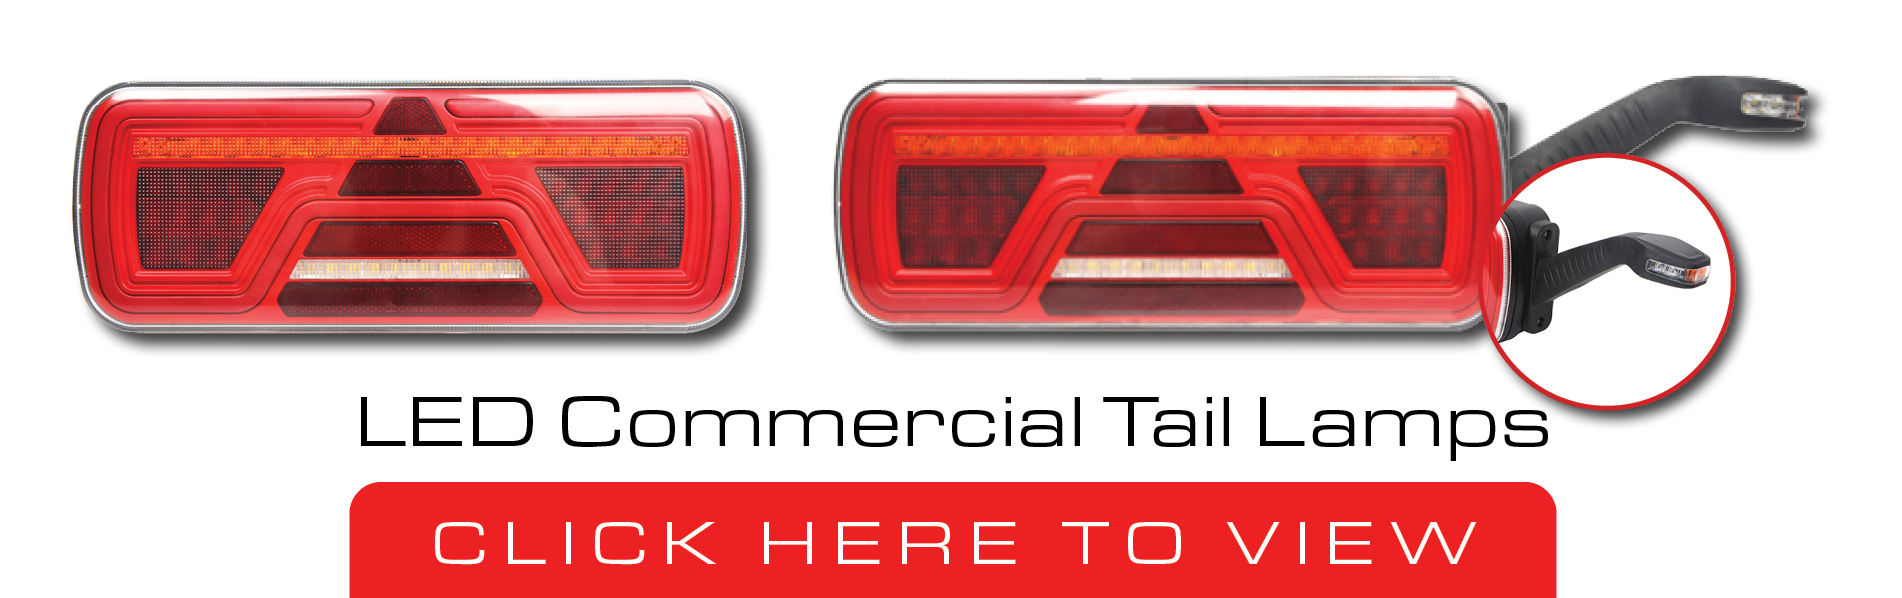 LED Commercial Tail Lamps